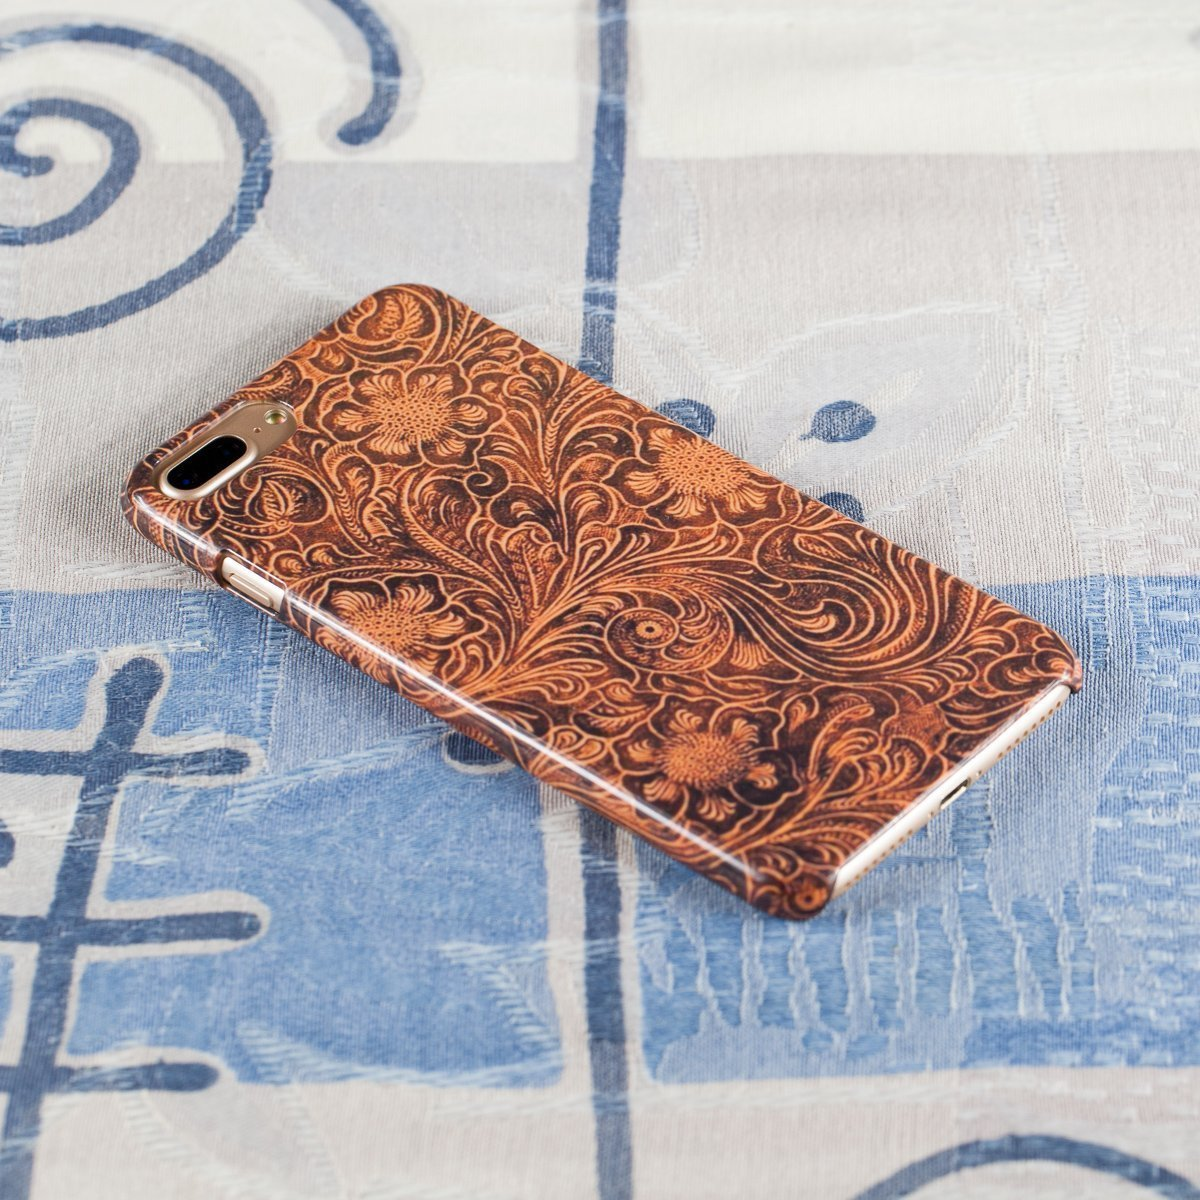 Slim Case for iPhone 7 Plus, 8 Plus. Tooled Leather Look.